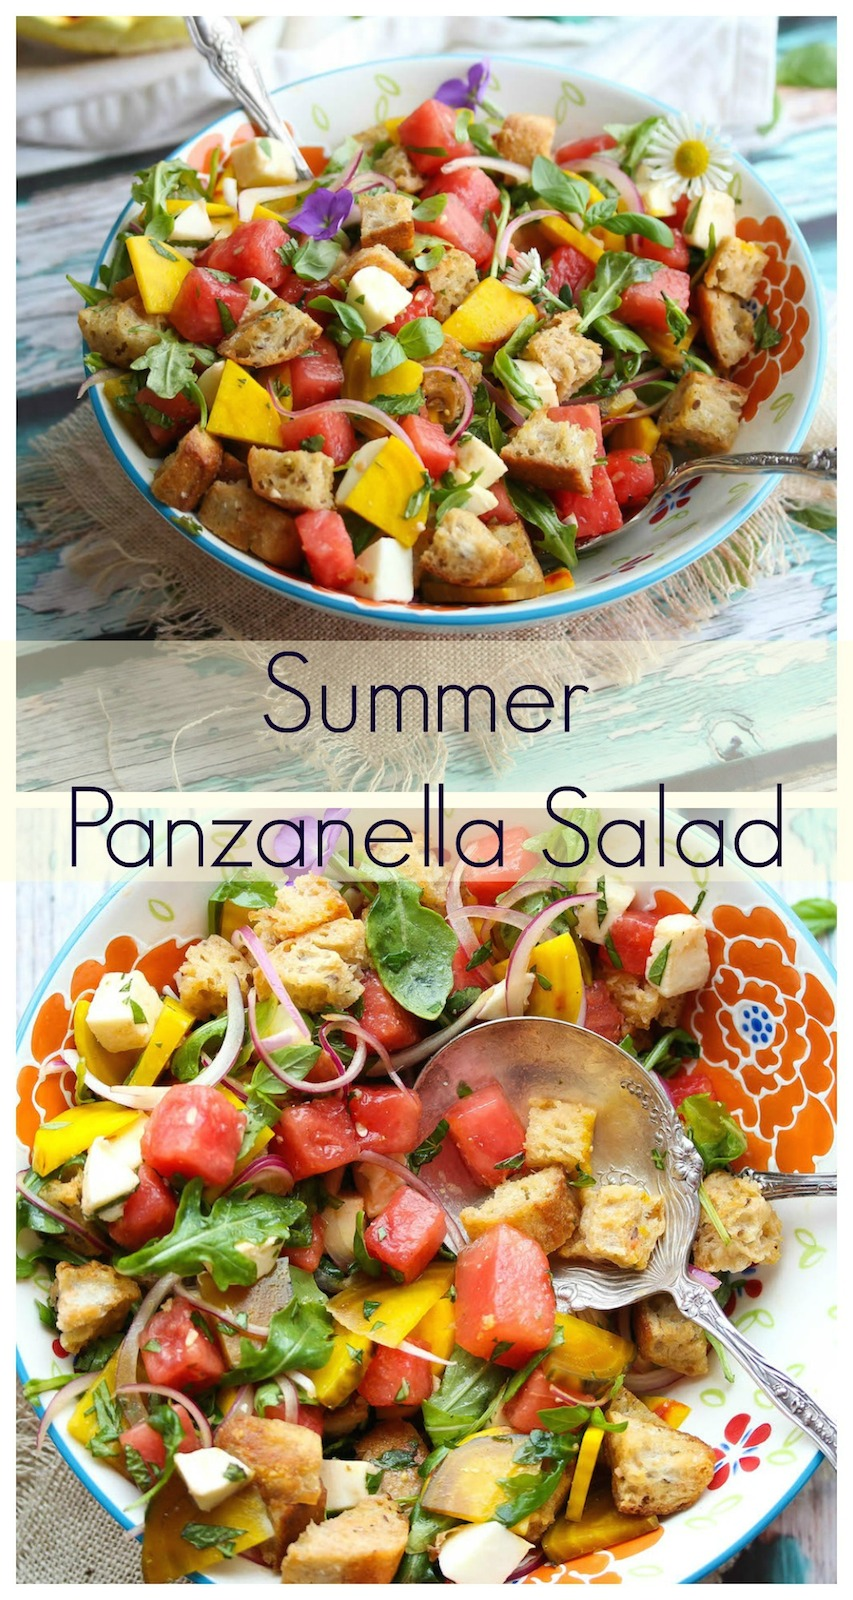 Summer Panzanella Salad | Dishing Out Health